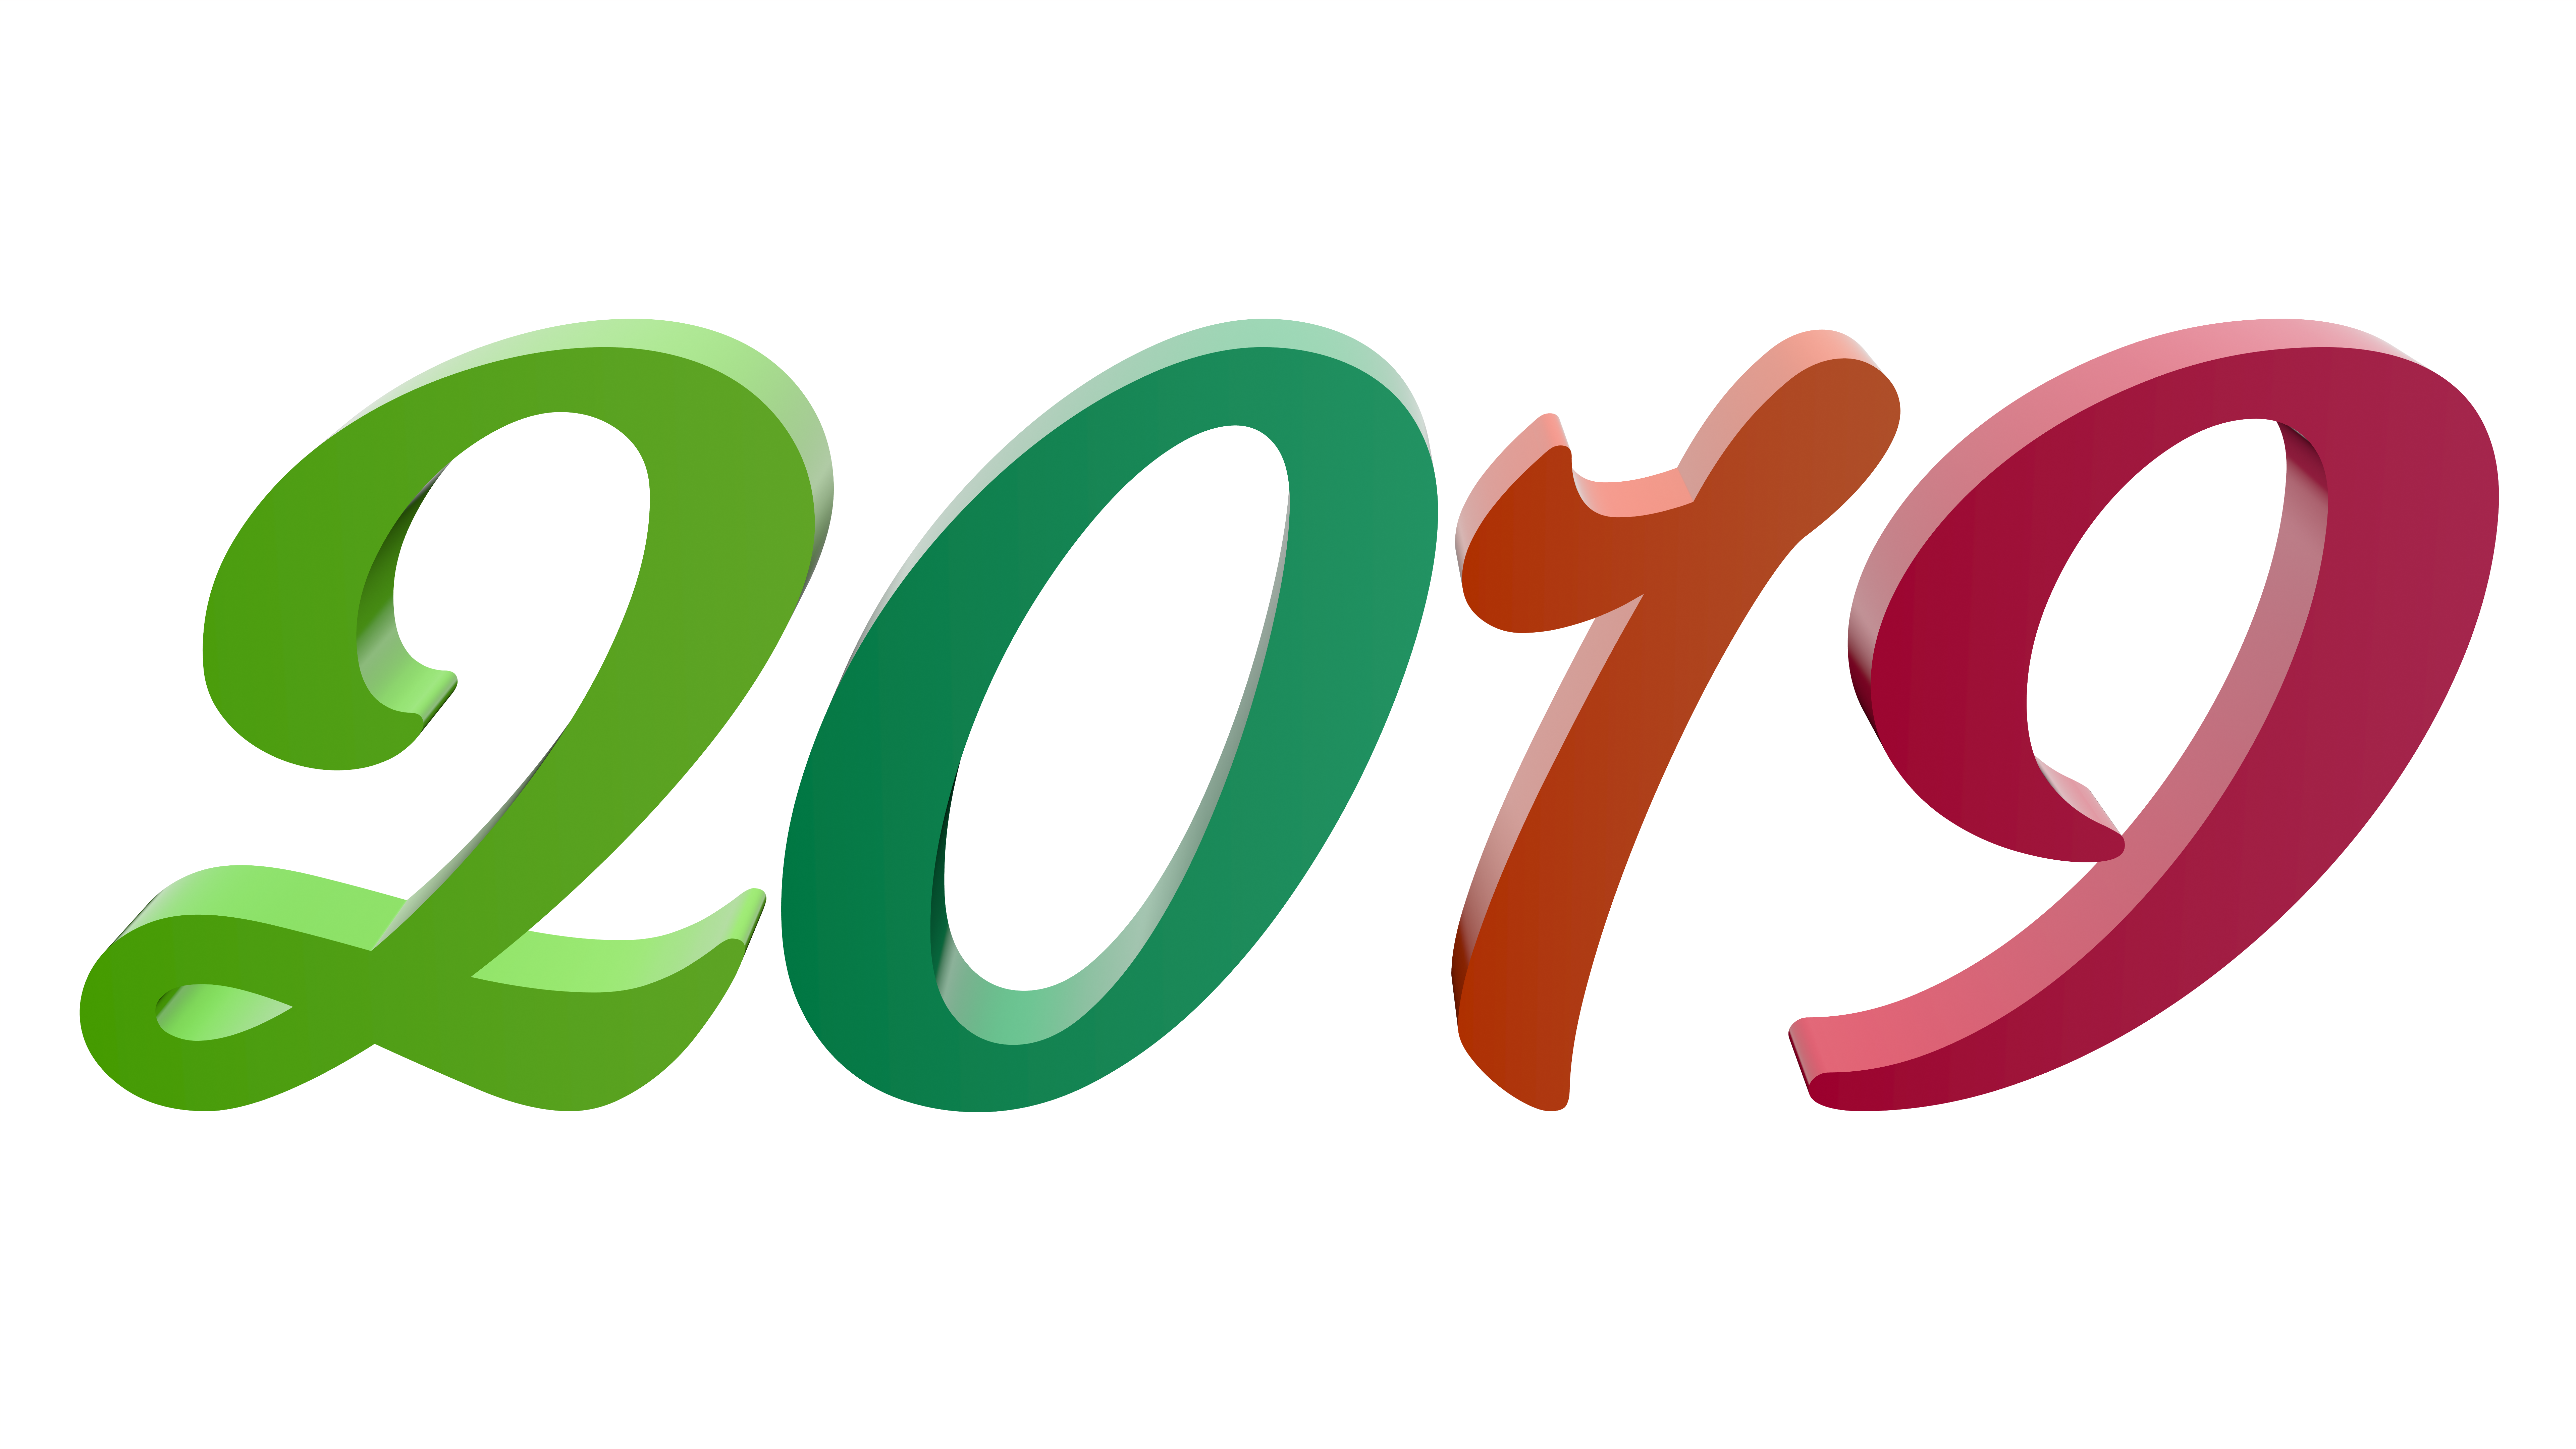 2019 New Year Free 3D Text Illustrations | Windows 8.1/10 Guides